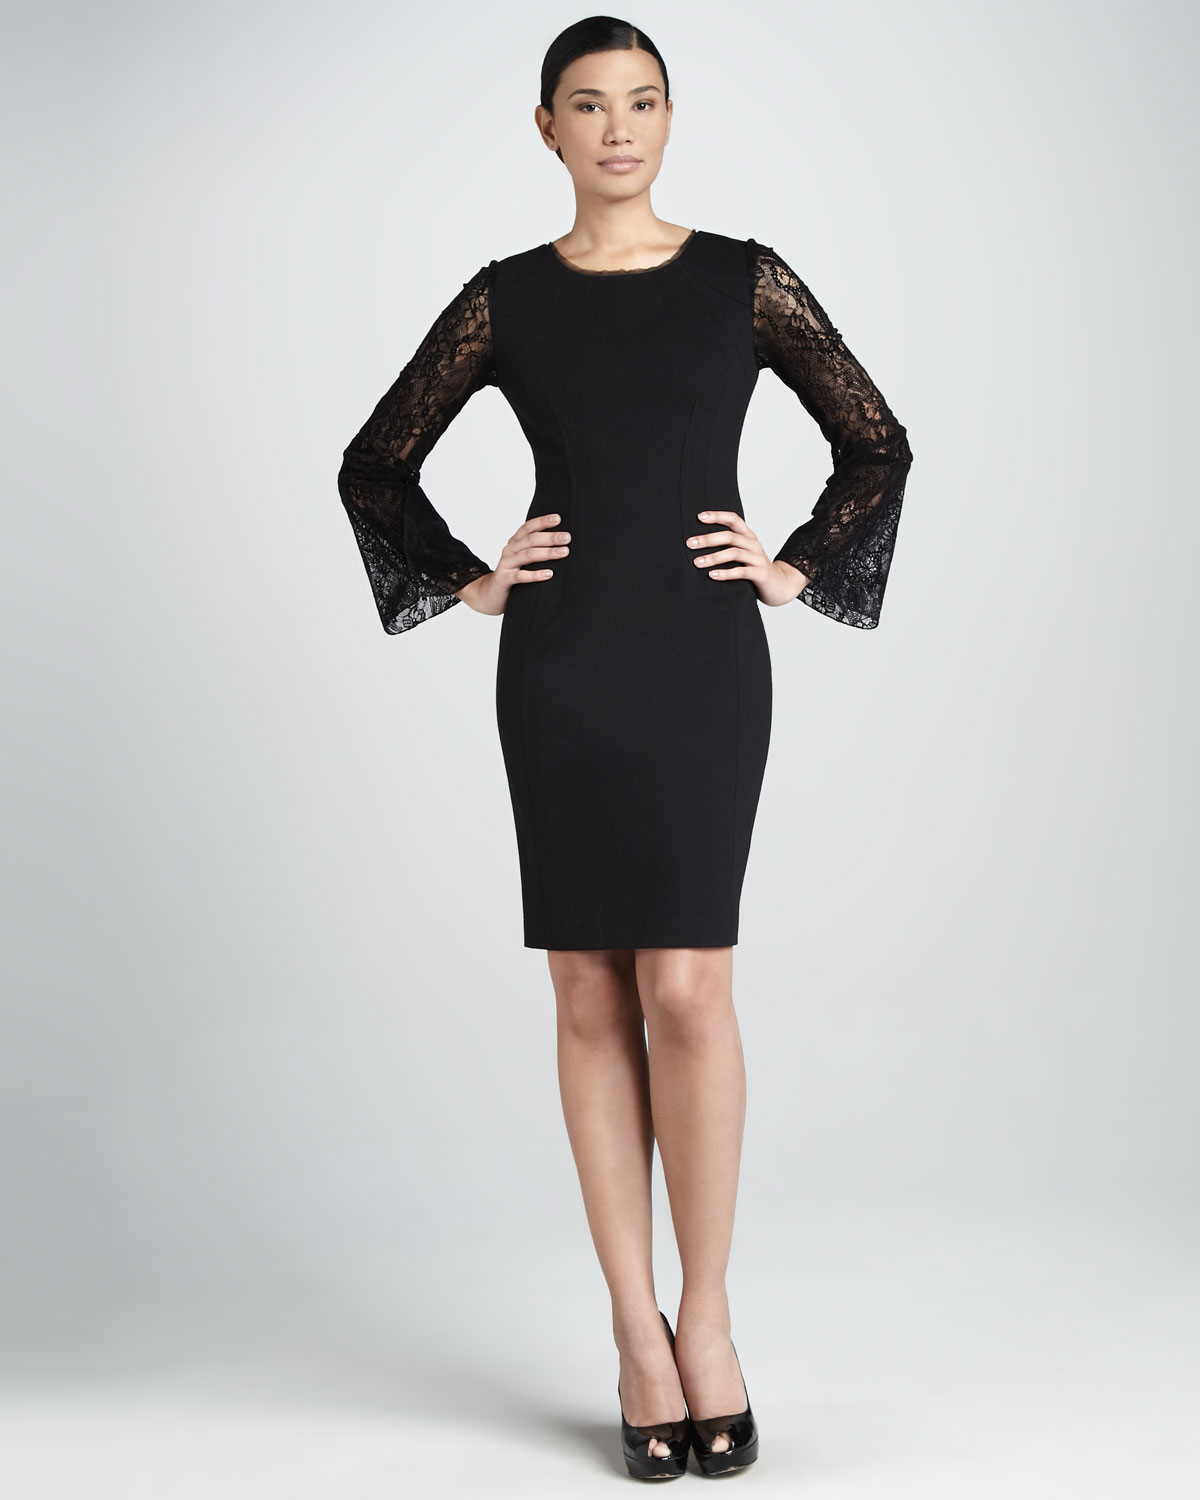 Preppy goth fashion suggestions needed (Page 1) - Fashion and Style ...